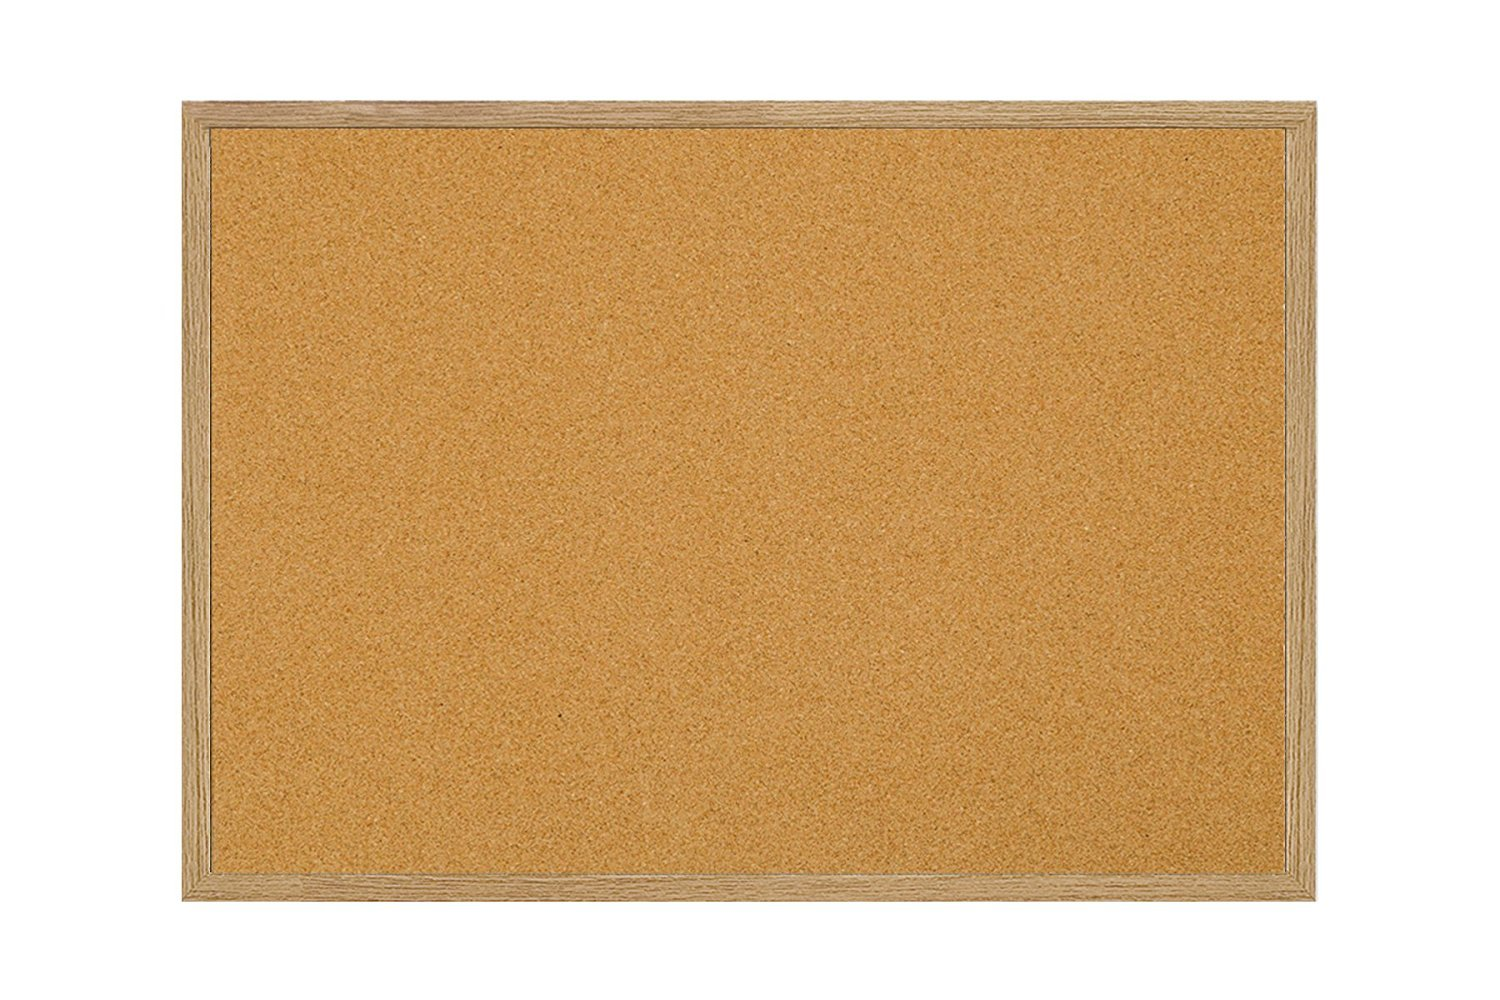 MasterVision Bulletin Board, Cork Board, Pin Board with Oak Frame, 24' x 36' 24 x 36 Bi-silque MC070014231